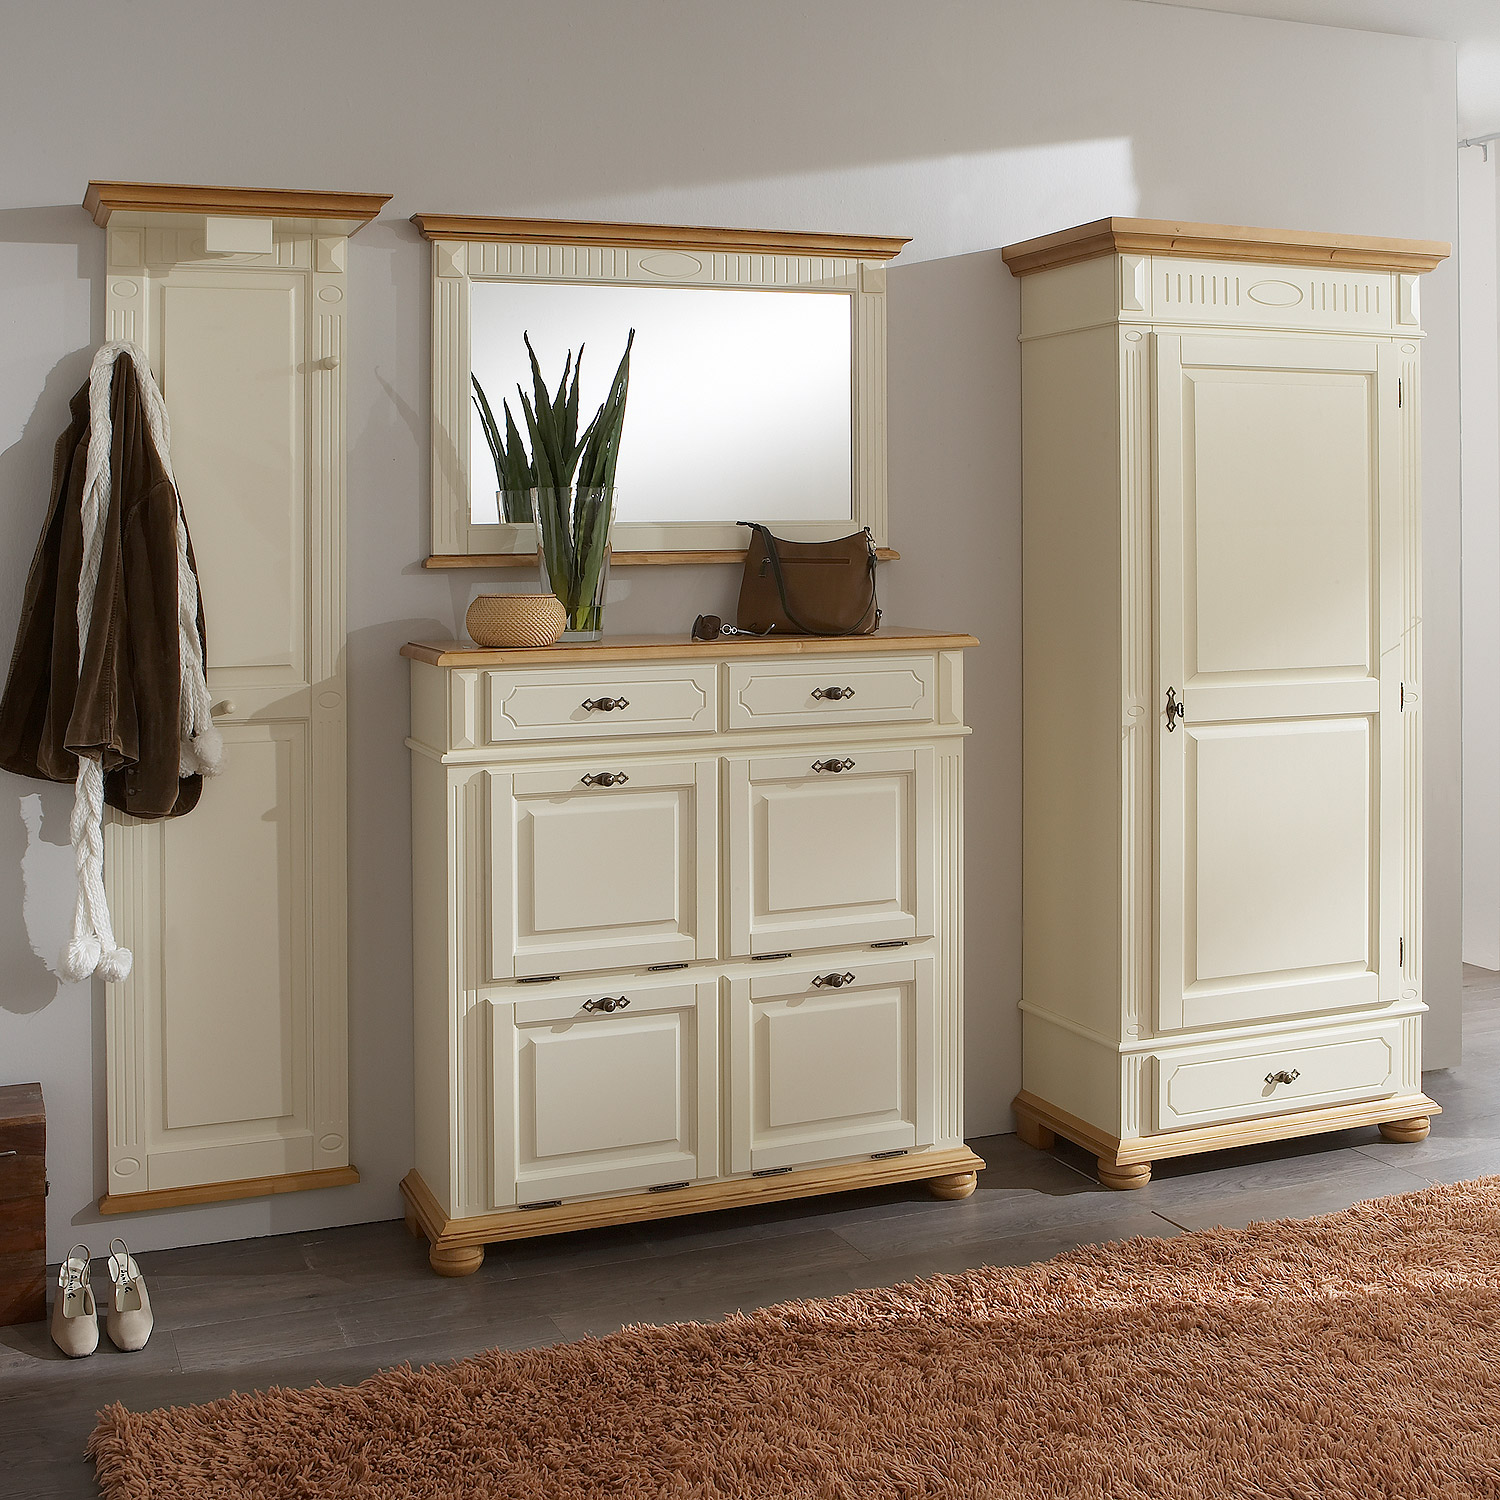 garderoben set 3 teilig siena 100cm breit weiss nussbaum mit n ssebest ndigen und kratzfesten. Black Bedroom Furniture Sets. Home Design Ideas